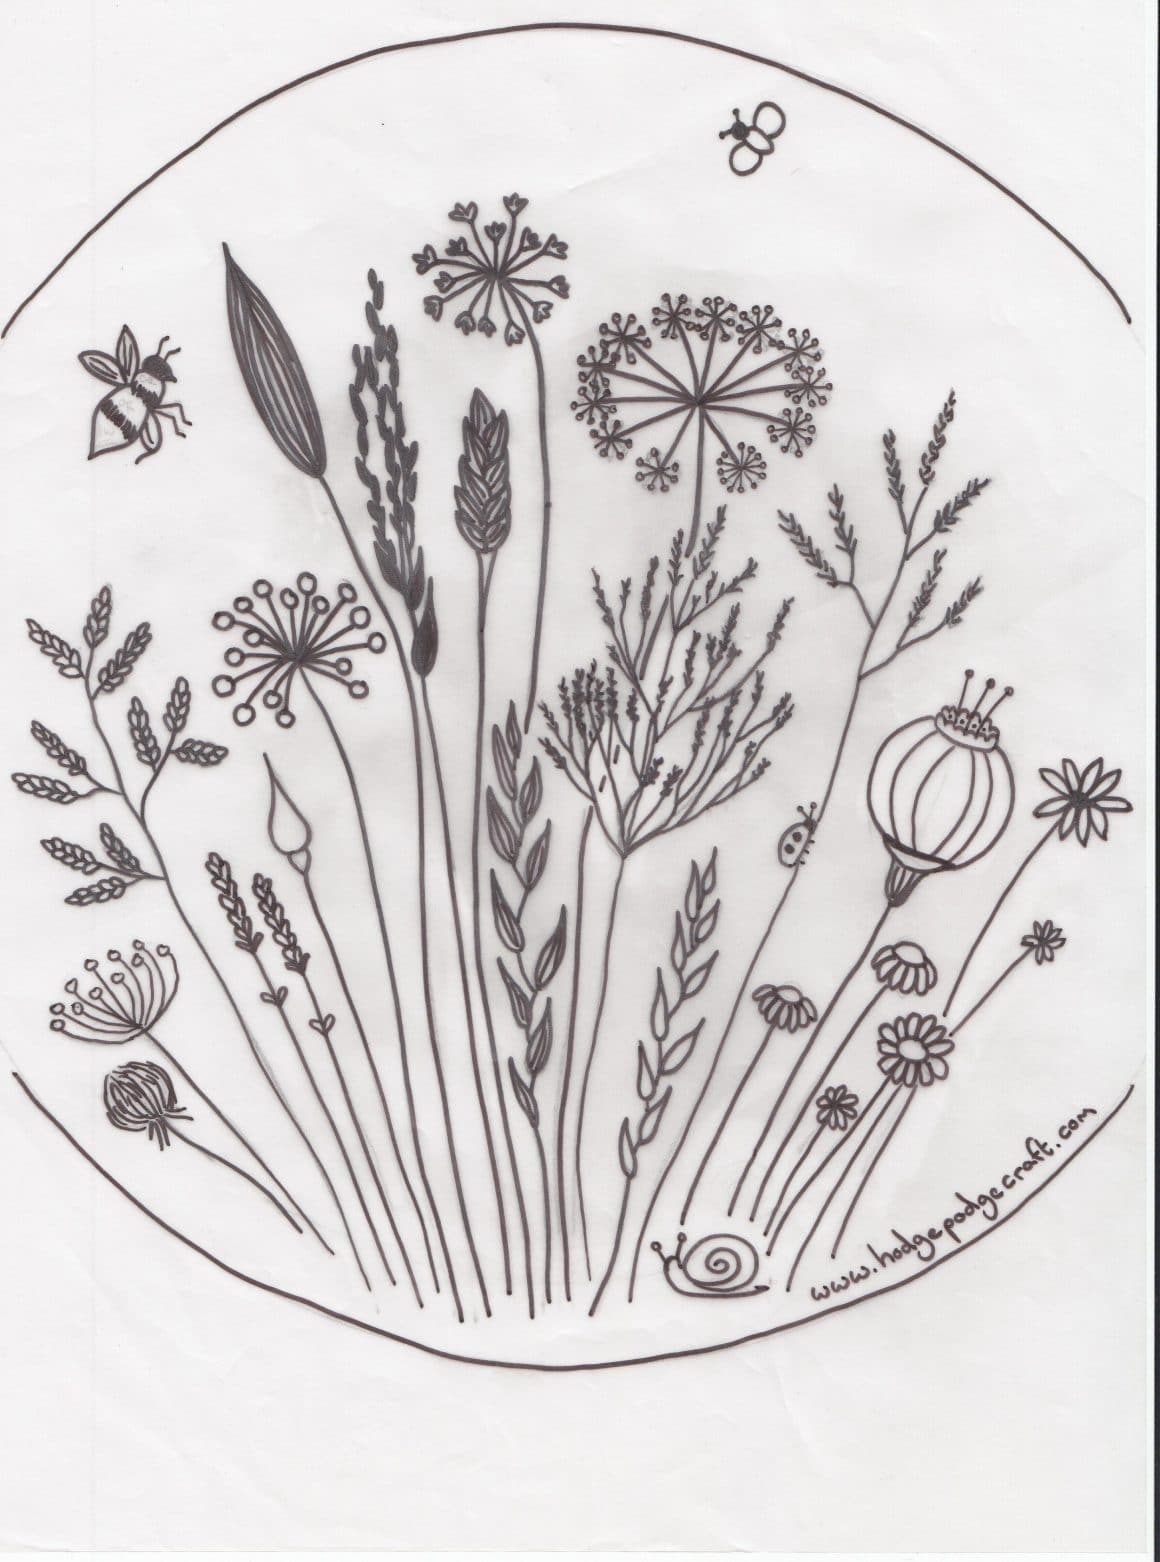 How To Make An Embroidery Pattern Free Floral Meadow Embroidery Pattern